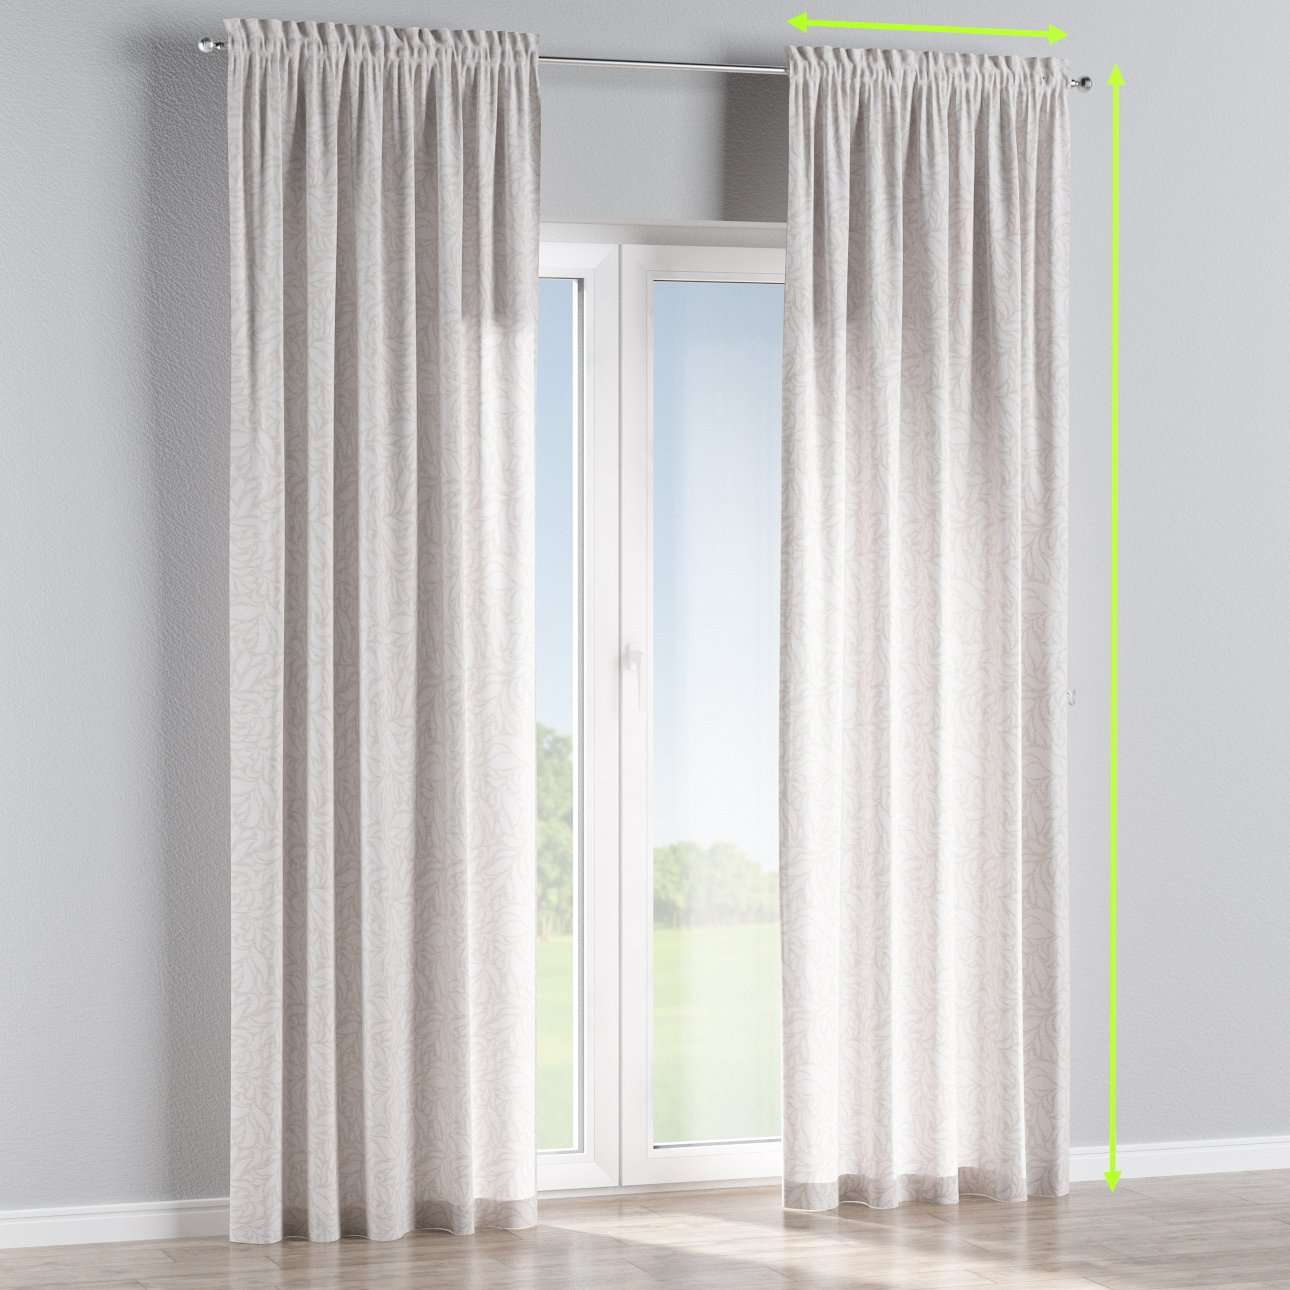 Slot and frill lined curtains in collection Venice, fabric: 140-50